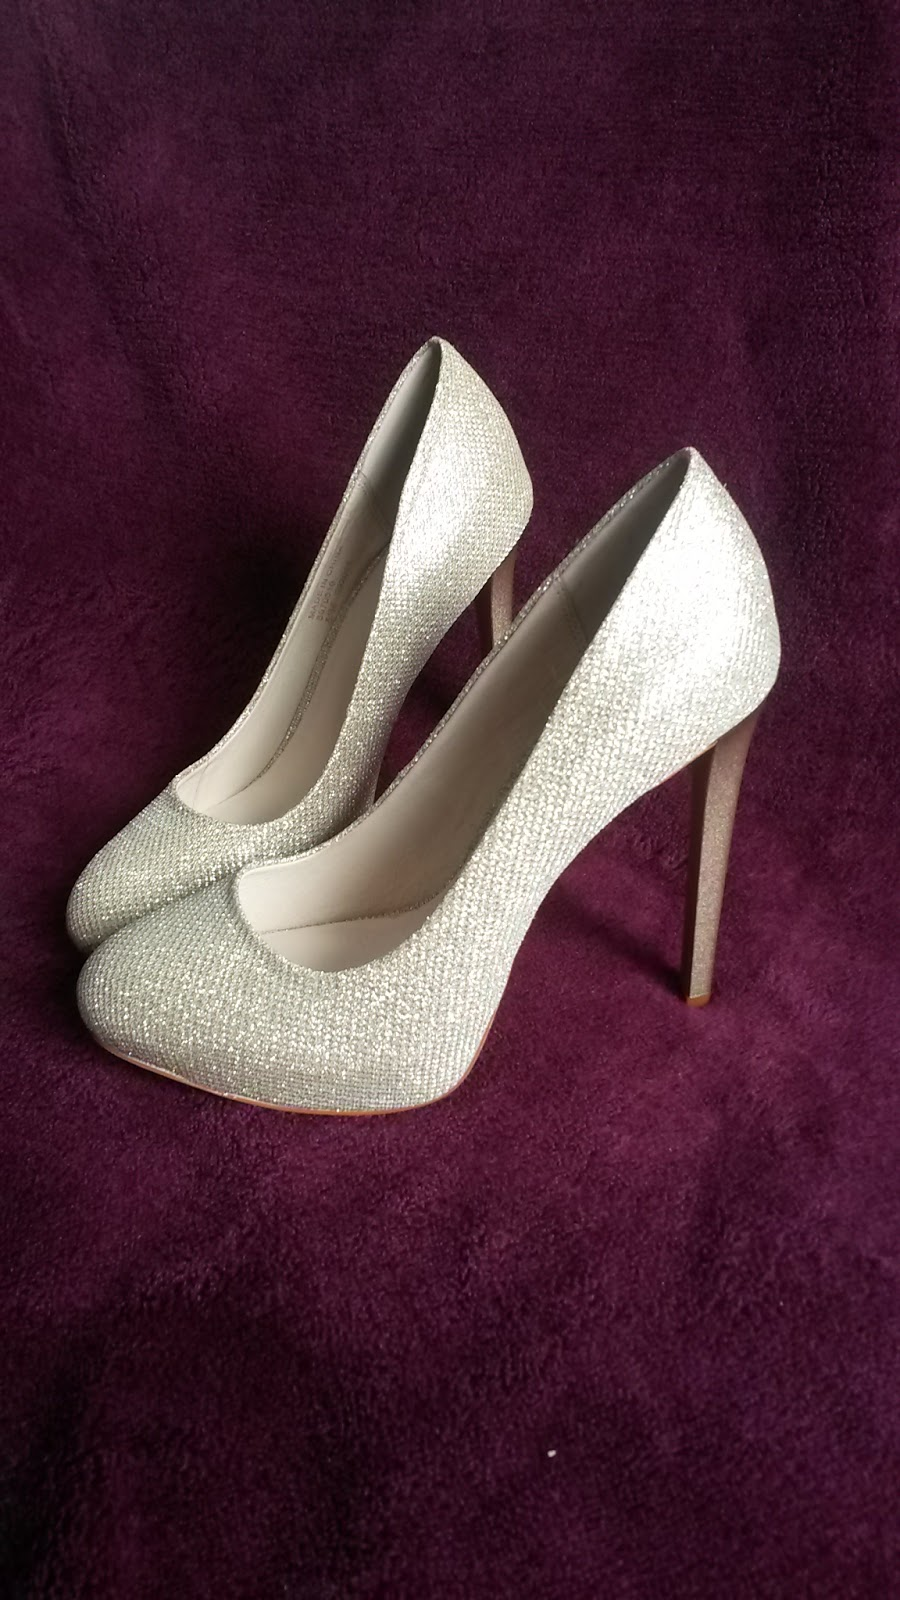 Silver heeled shoes